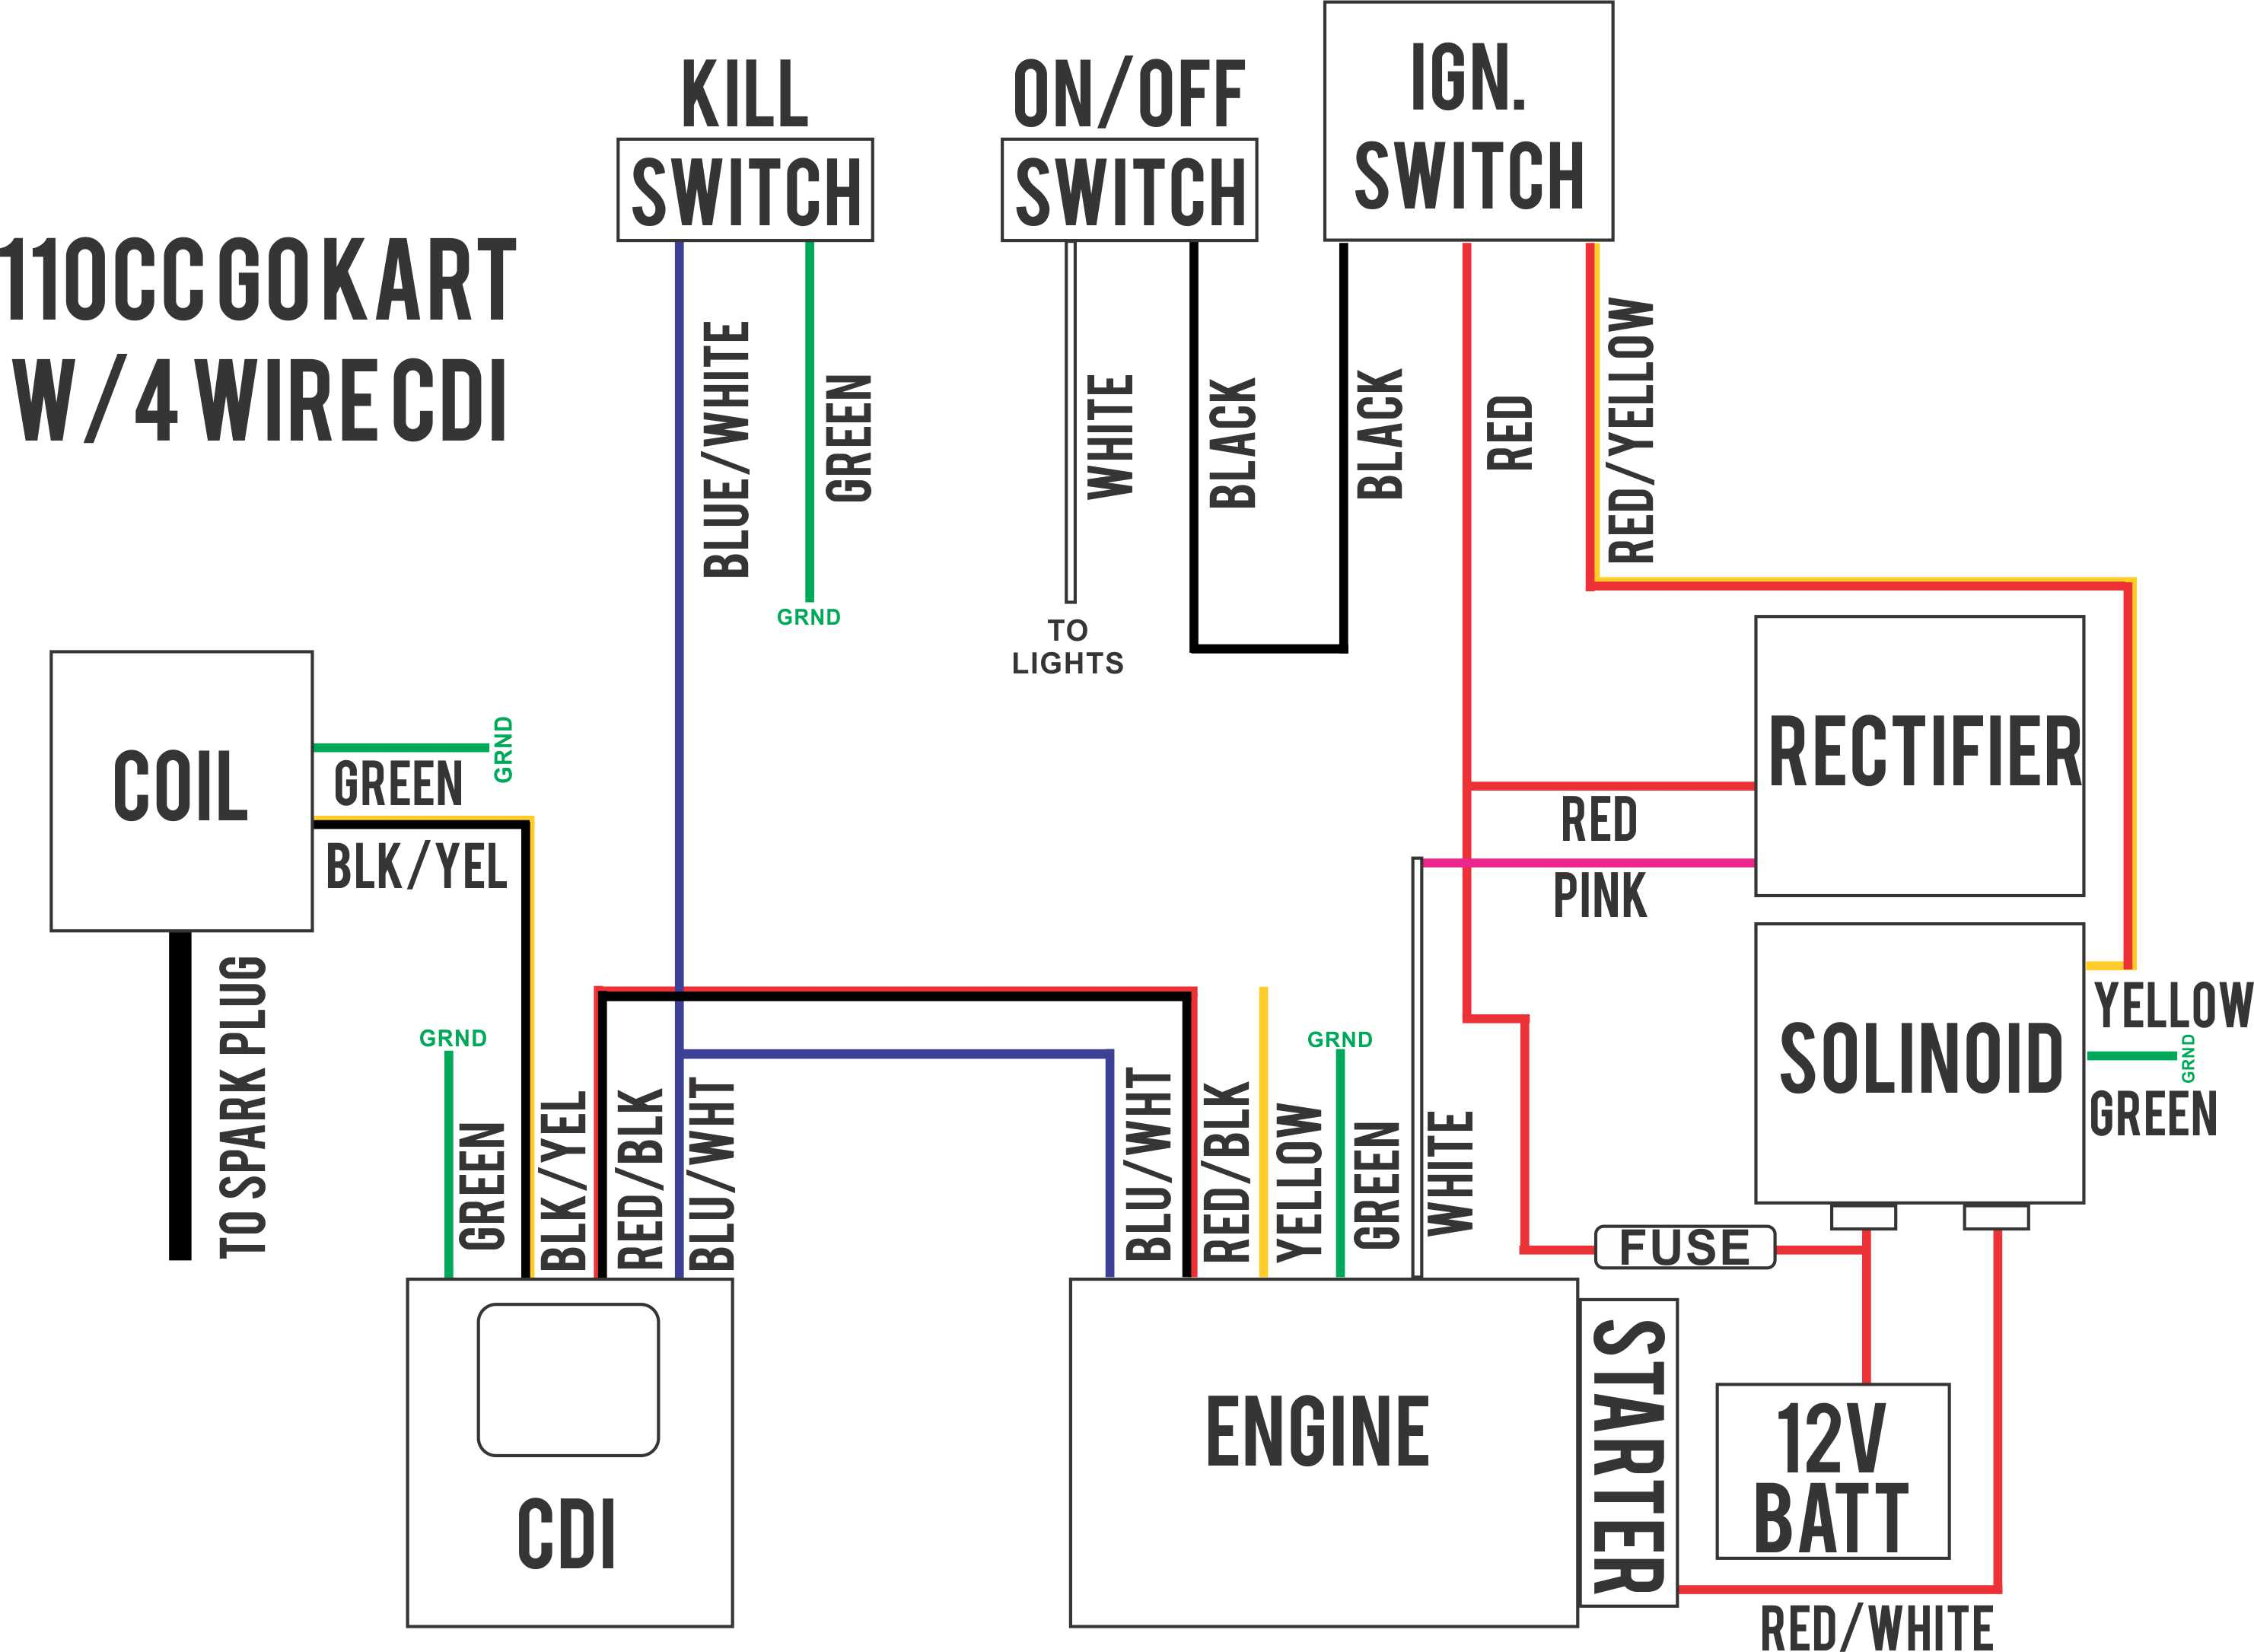 Usb Switch Box Wiring Diagram | Wiring Diagram - Usb And Switch Wiring Diagram